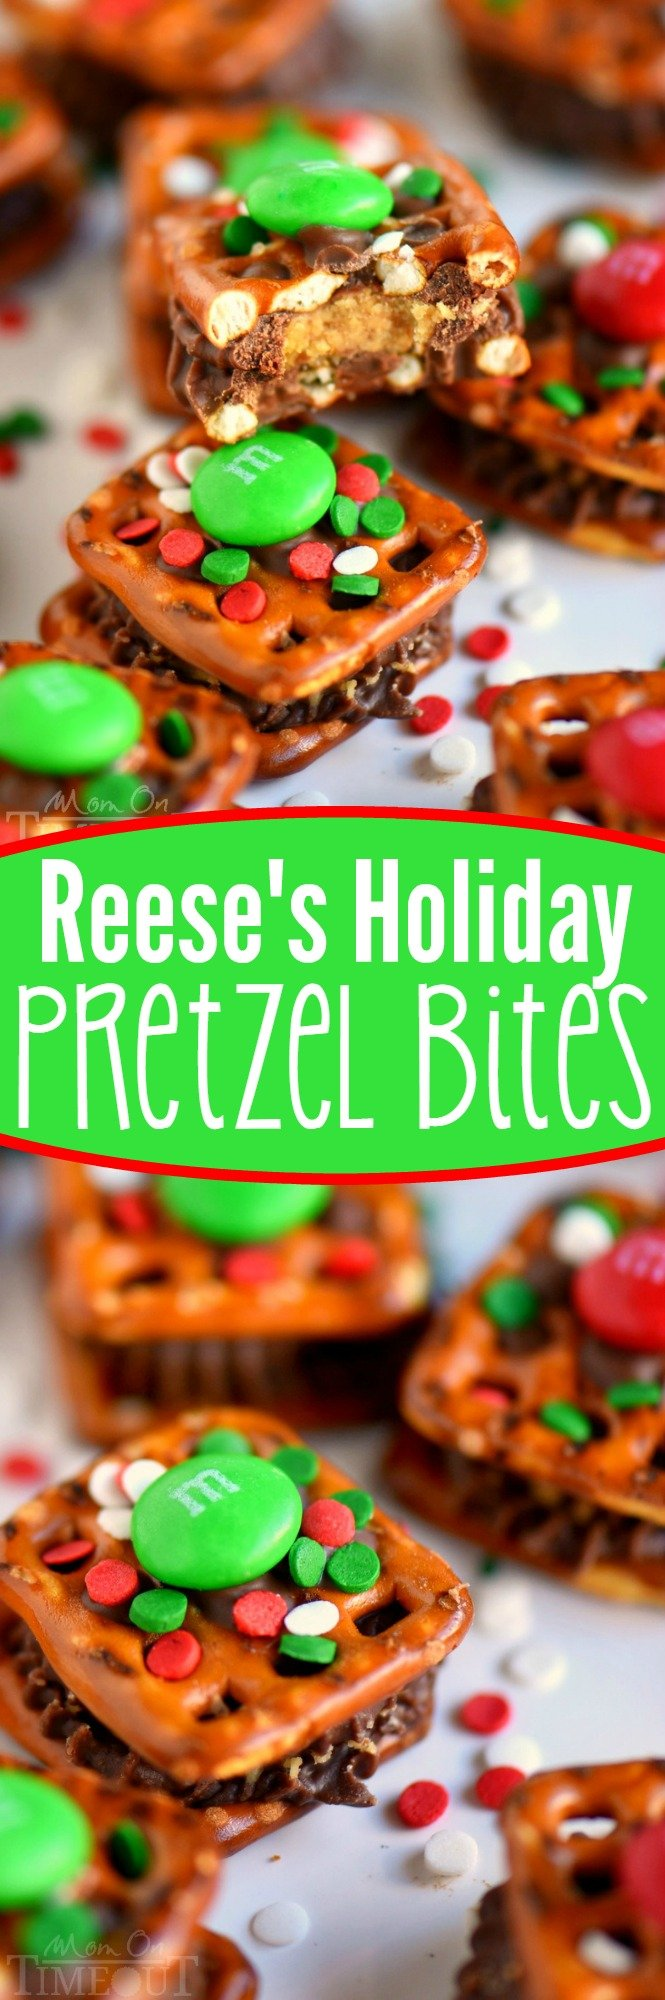 These Reese's Holiday Pretzel Bites need to make it onto your baking list this year! This recipe is so easy, your kids can totally make them for you. Sweet and salty and totally festive - no one will be able to resist these little treats!